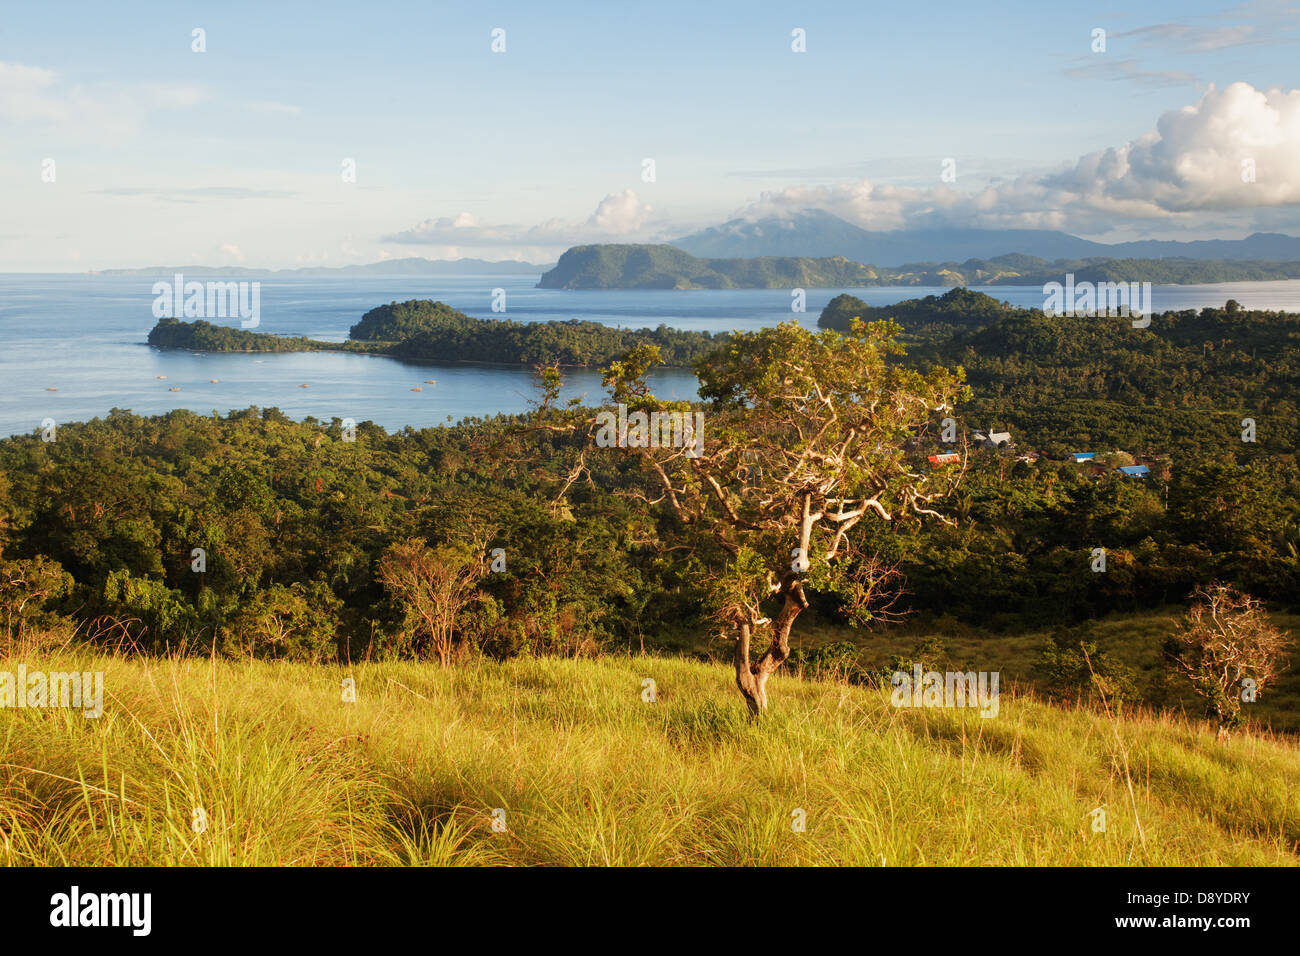 View from Bangka Island against Lembeh Strait, Sulawesi, Indonesia - Stock Image